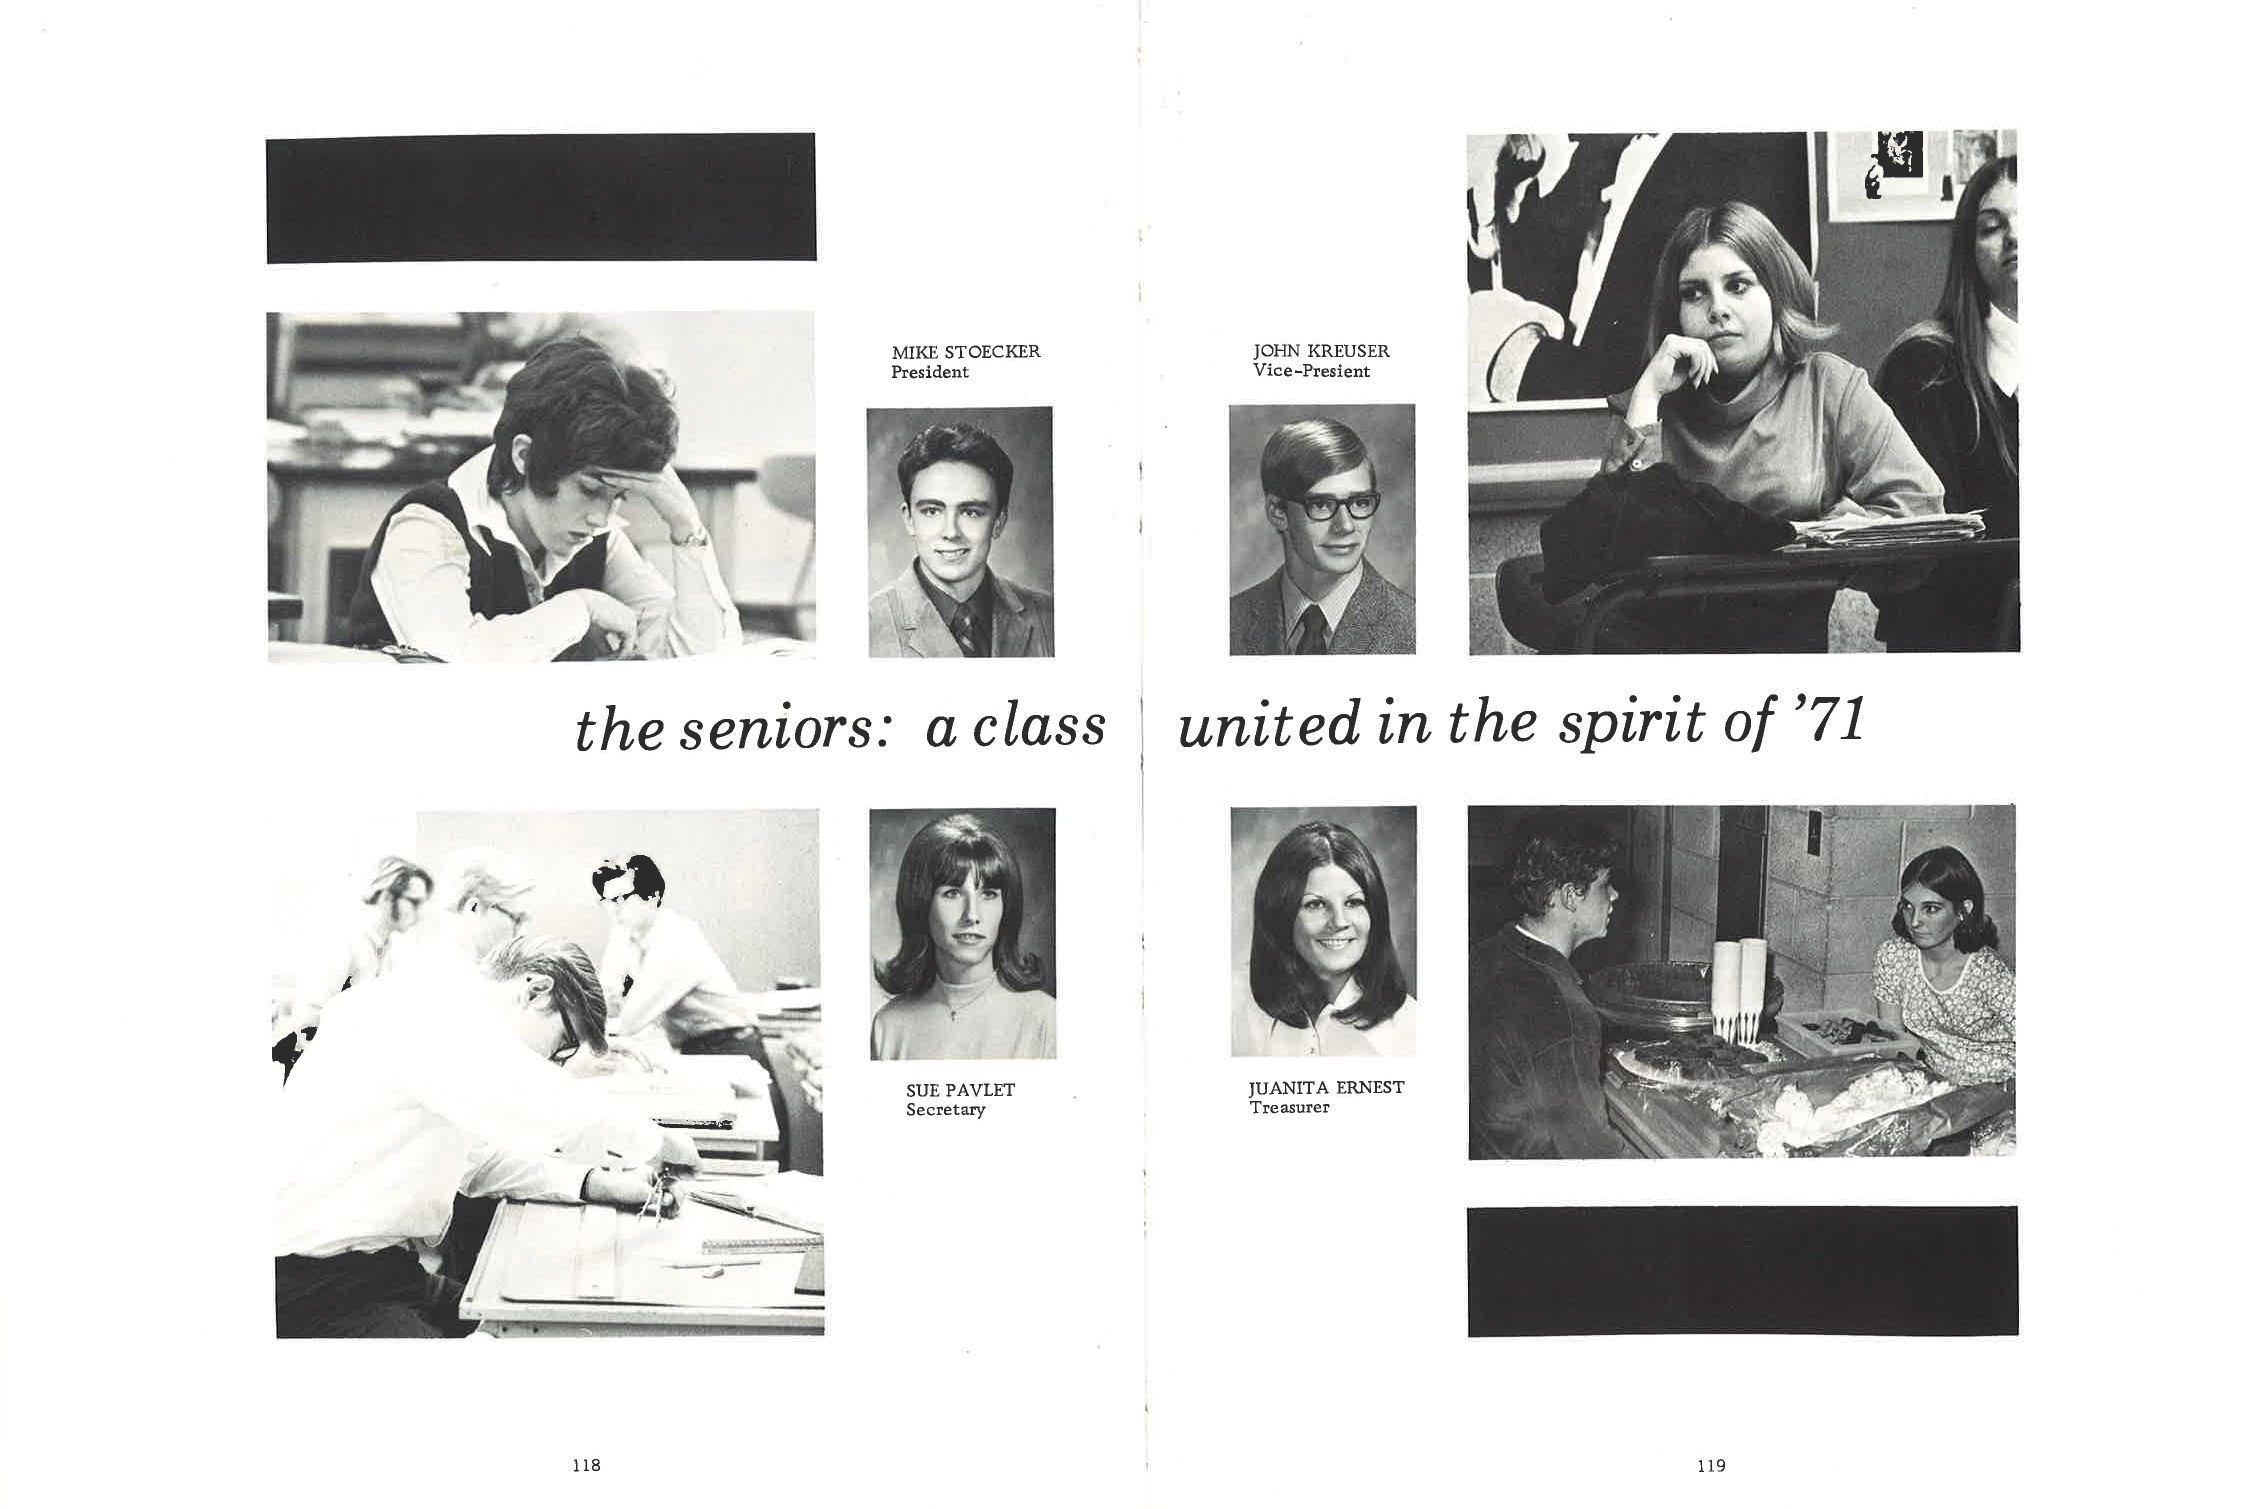 1971_Yearbook_118-119.jpg